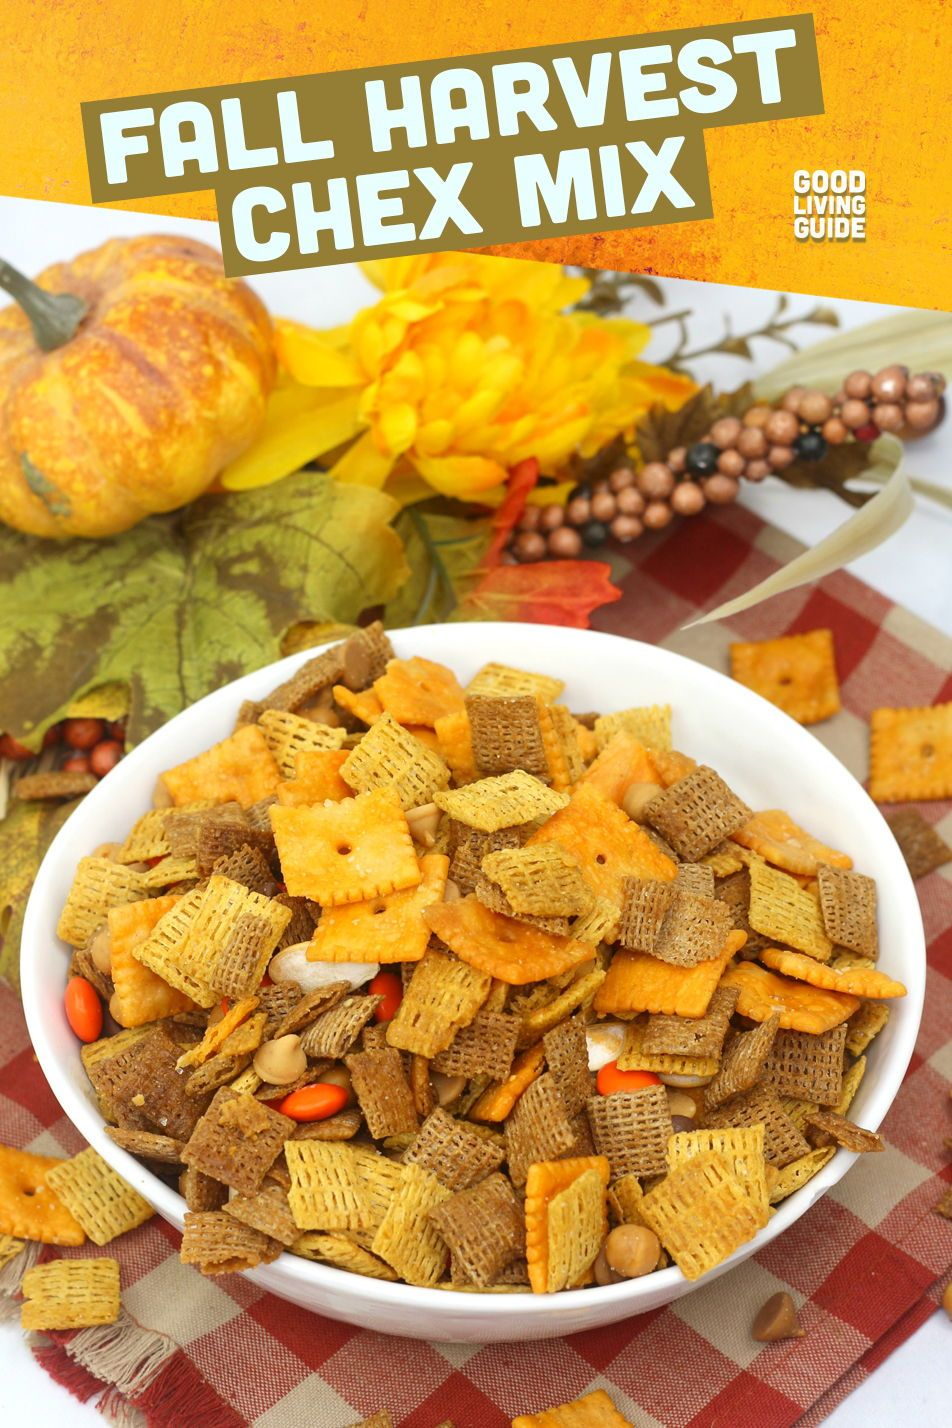 FALL HARVEST CHEX MIX takes a classic party mix and adds fall-friendly ingredients. 🍂